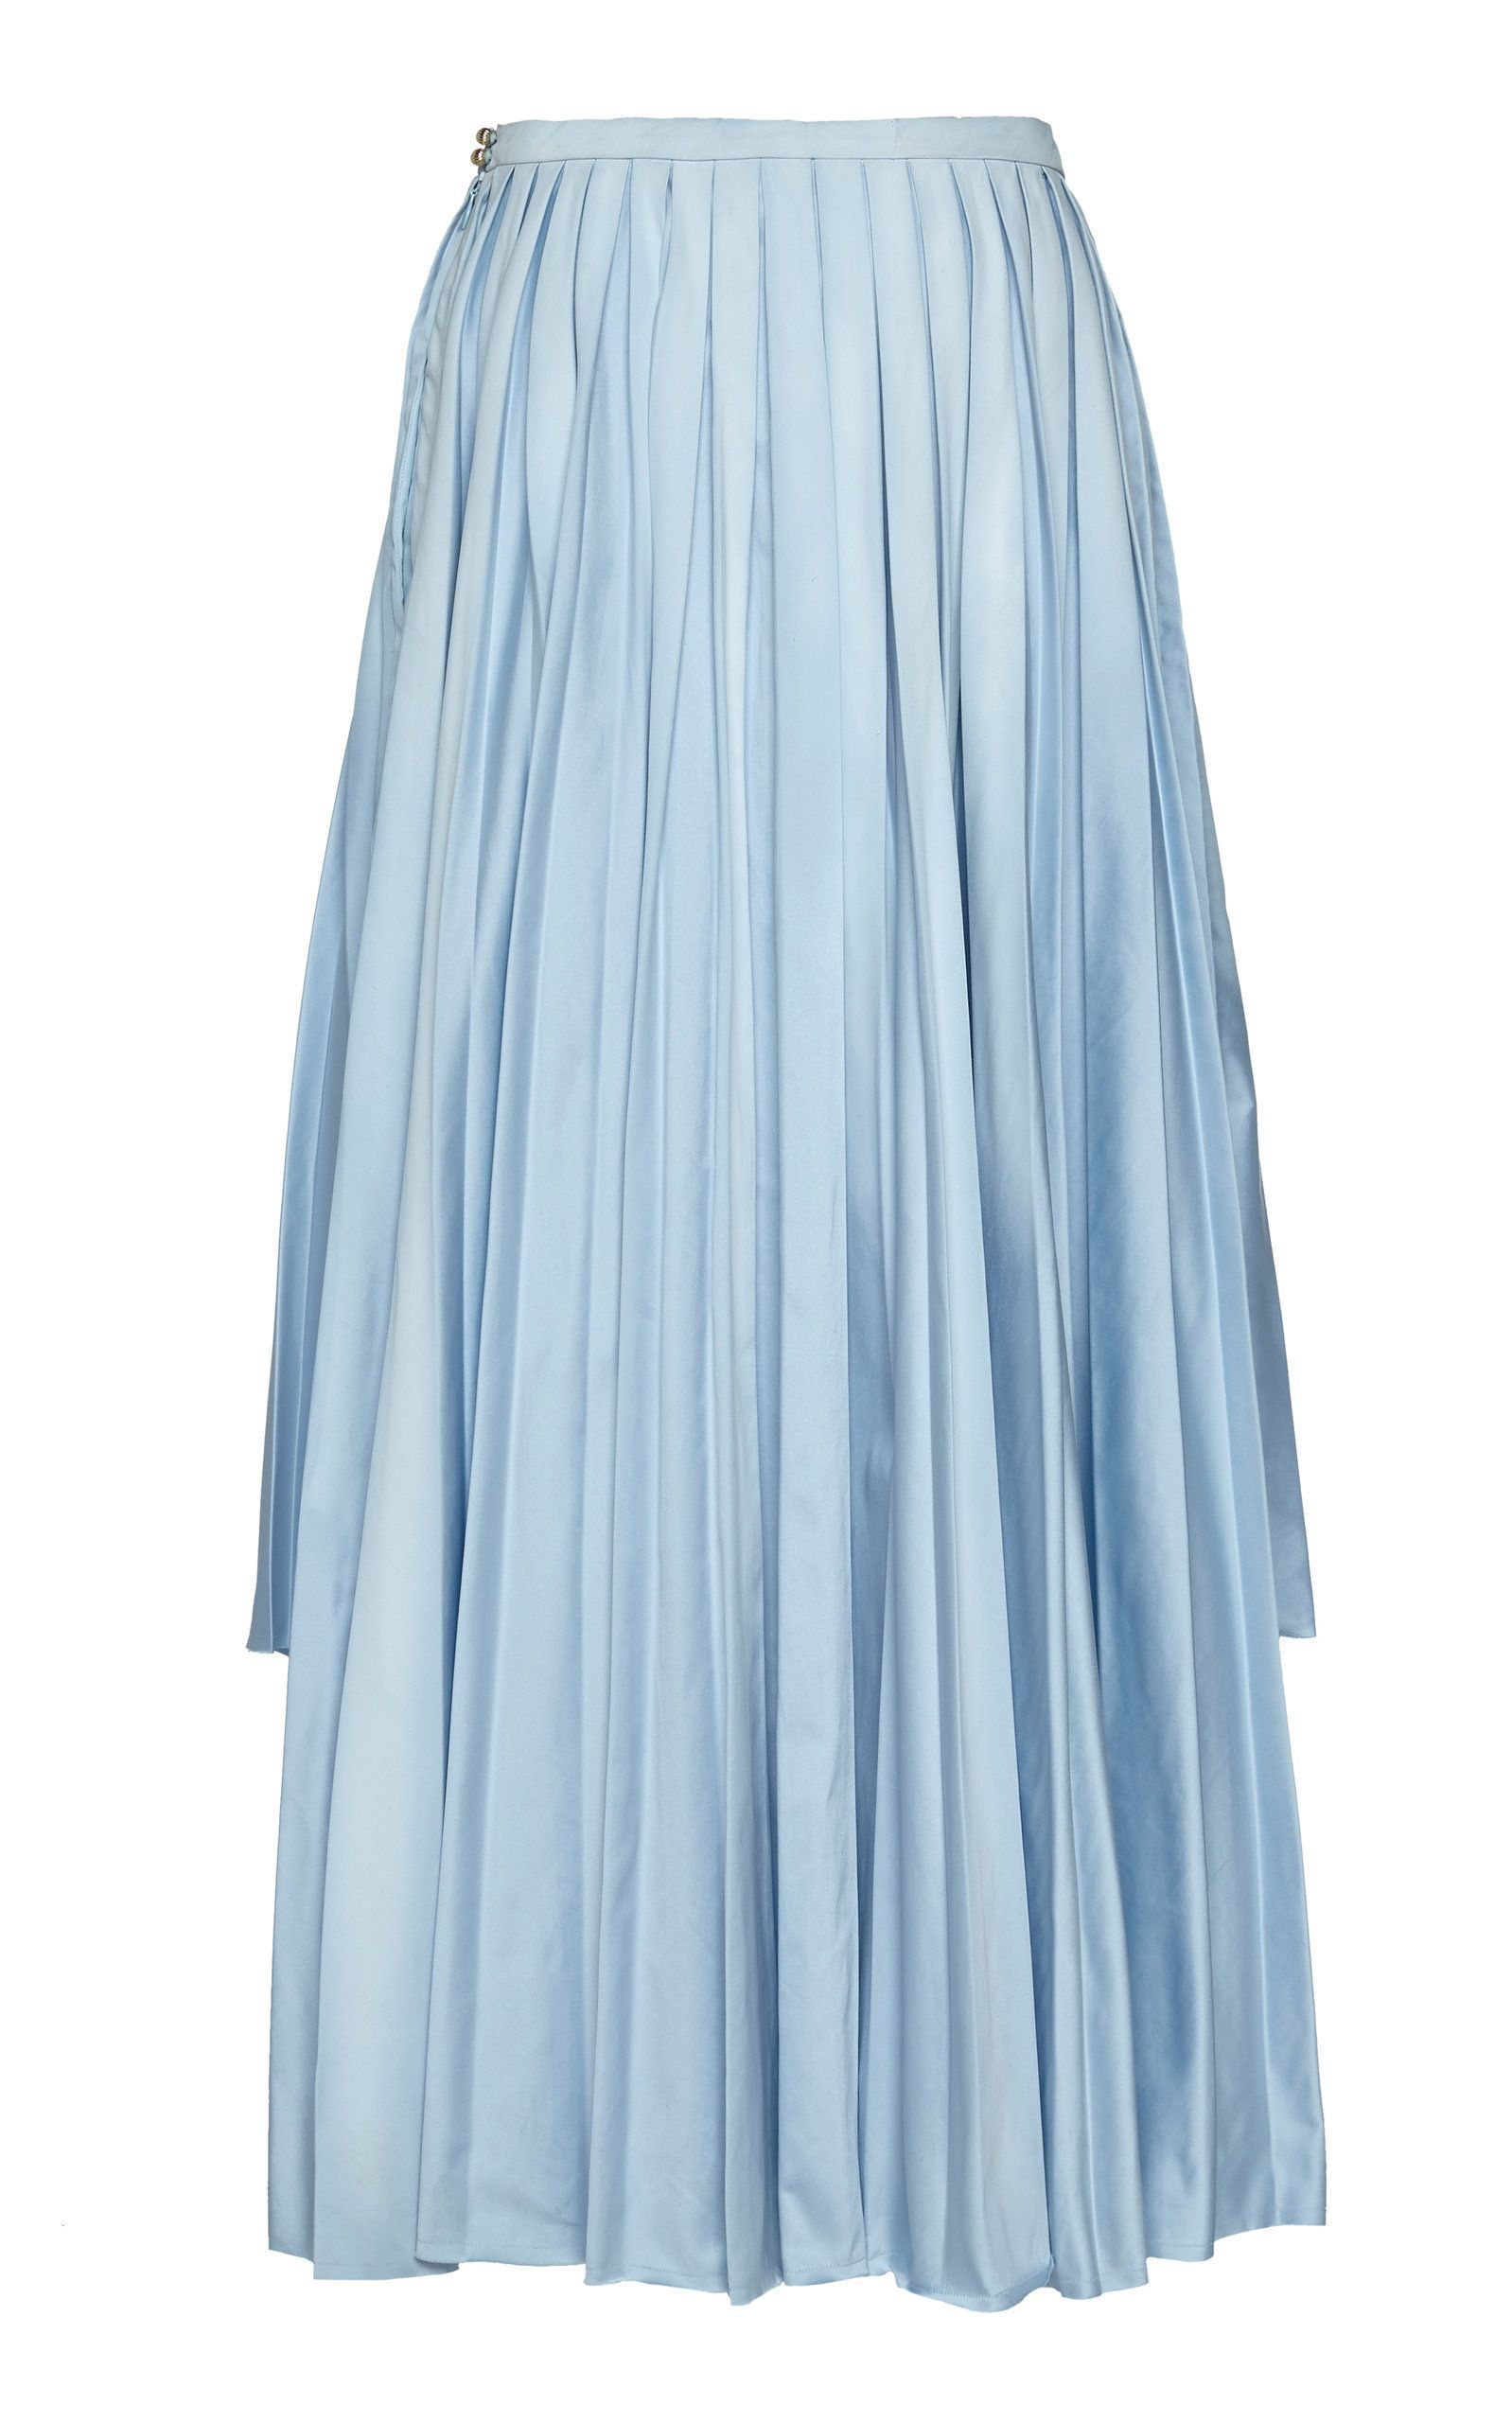 Lanvin High-Low Plissé Duchess Satin Midi Skirt #duchesssatin Lanvin High-Low Plissé Duchess Satin Midi Skirt #duchesssatin Lanvin High-Low Plissé Duchess Satin Midi Skirt #duchesssatin Lanvin High-Low Plissé Duchess Satin Midi Skirt #duchesssatin Lanvin High-Low Plissé Duchess Satin Midi Skirt #duchesssatin Lanvin High-Low Plissé Duchess Satin Midi Skirt #duchesssatin Lanvin High-Low Plissé Duchess Satin Midi Skirt #duchesssatin Lanvin High-Low Plissé Duchess Satin Midi Skirt #duchesssa